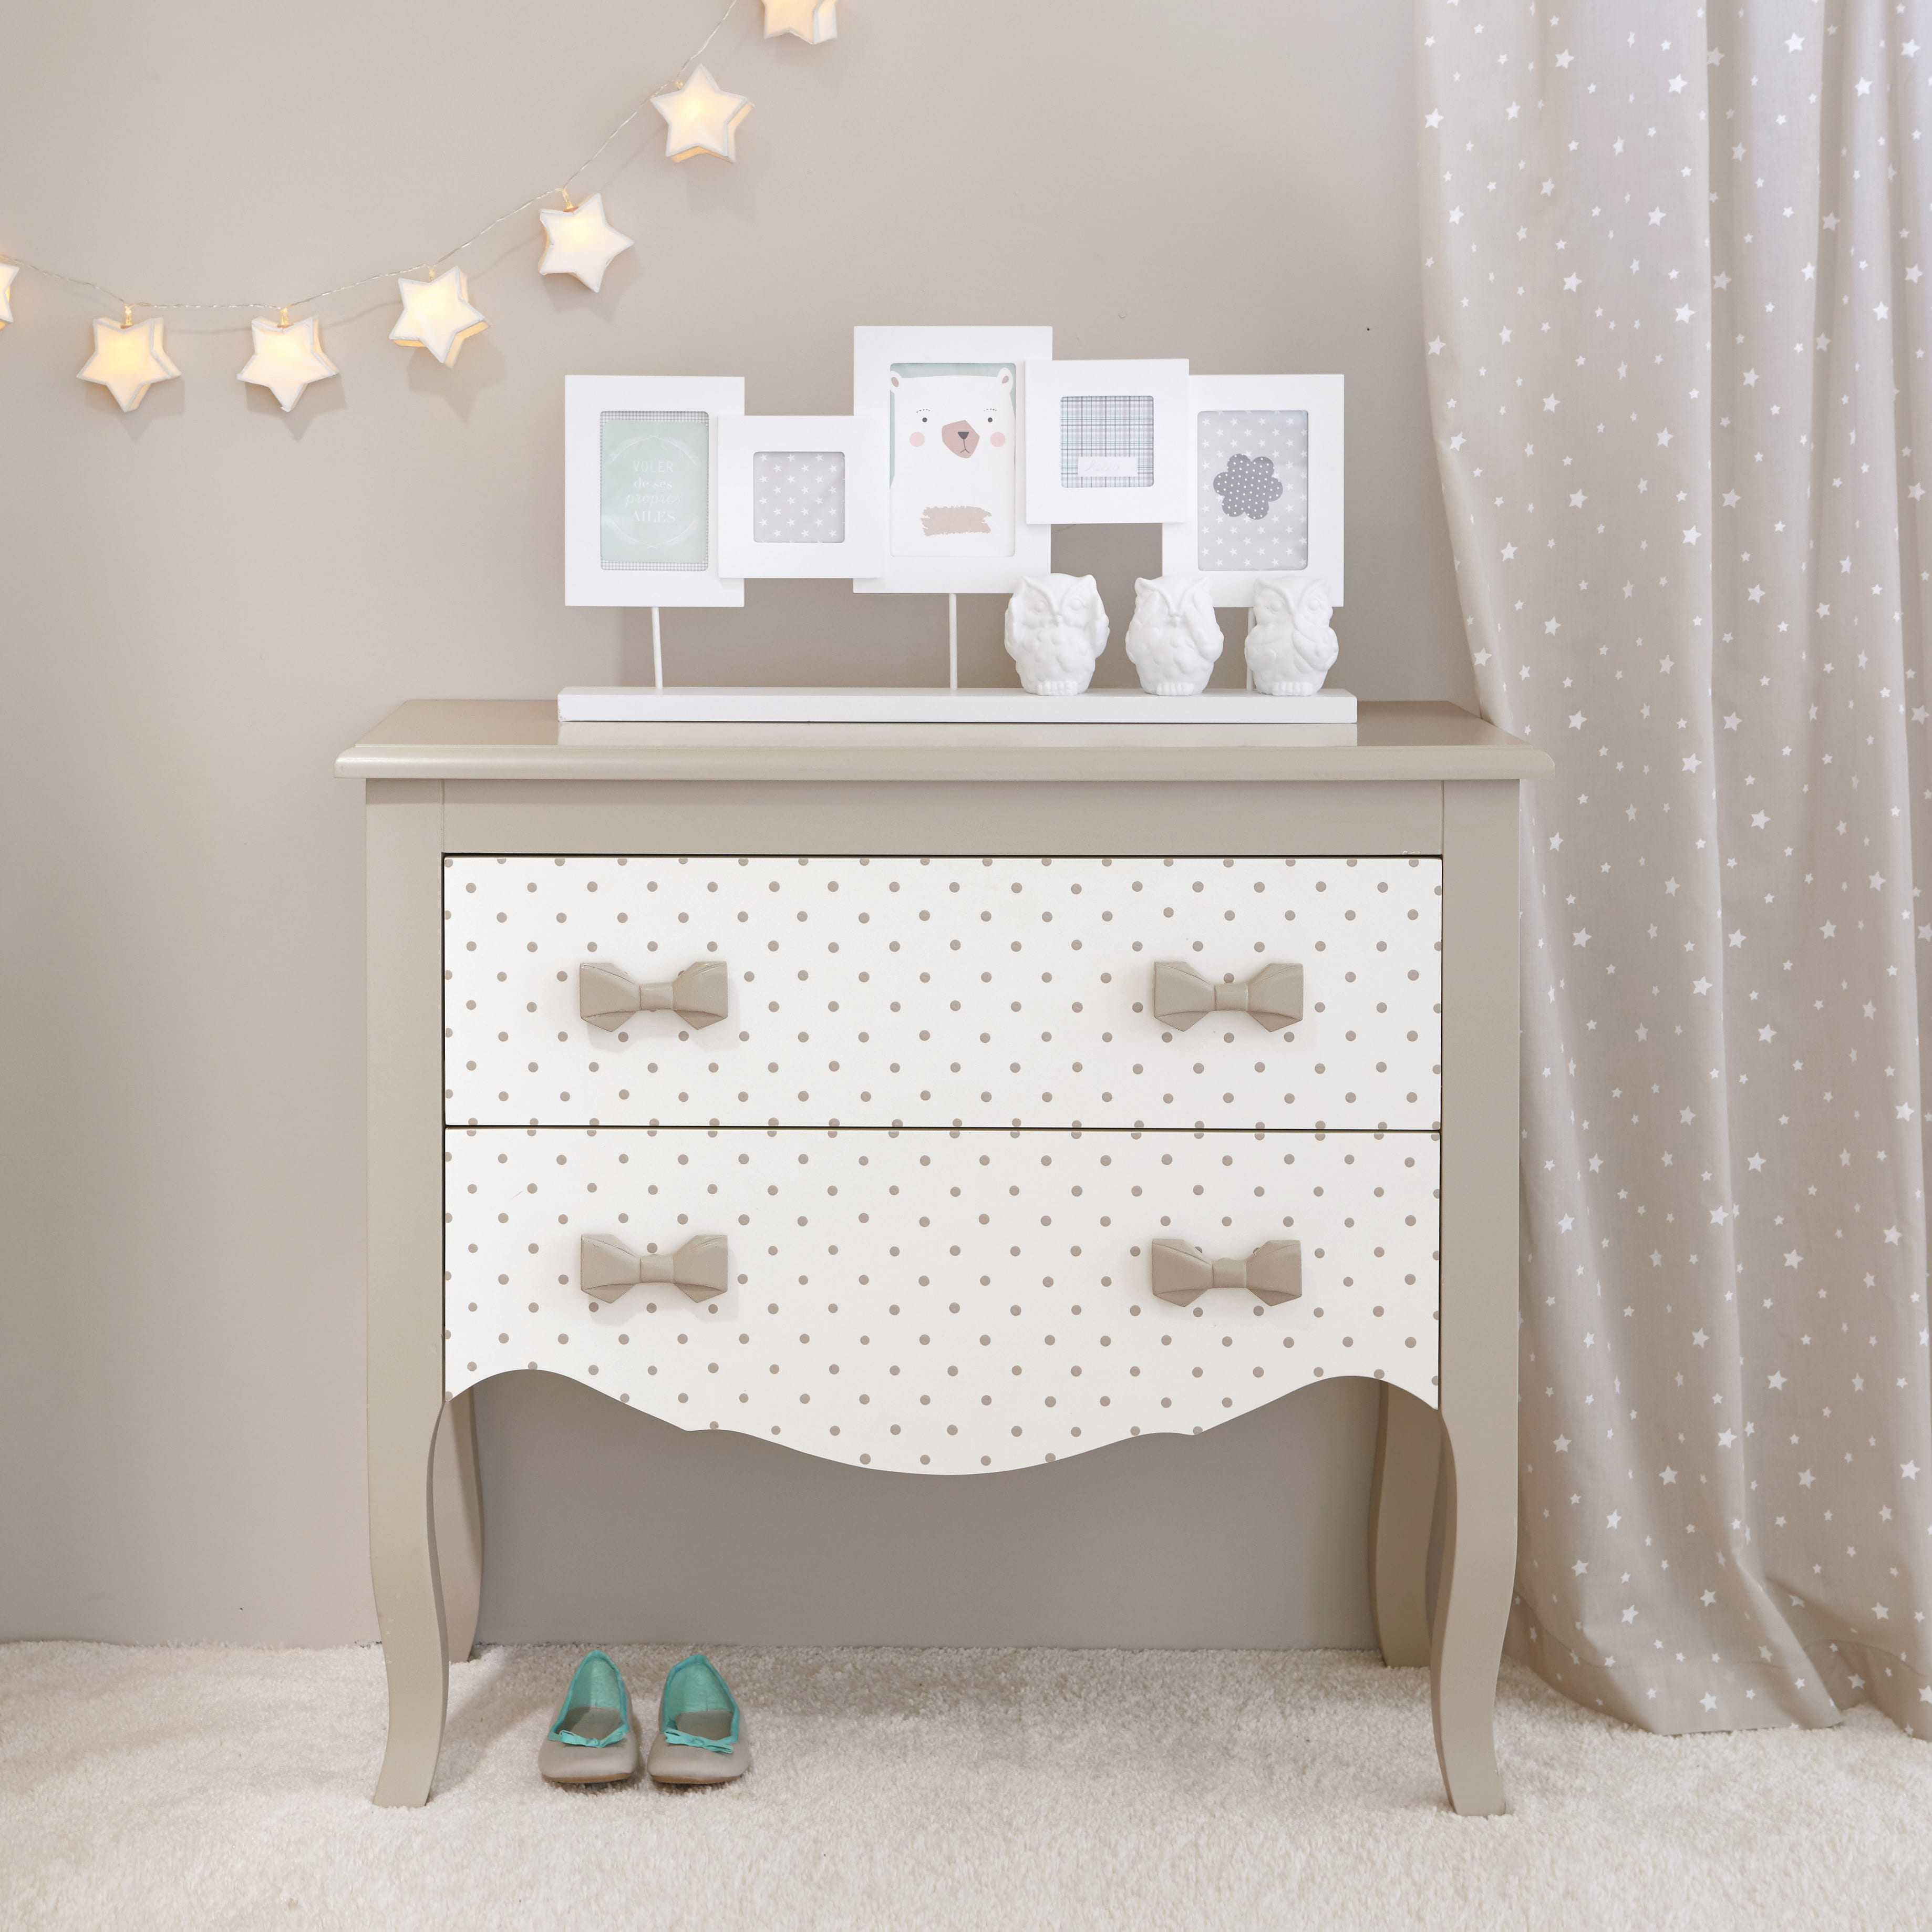 commode enfant en bois blanche taupe l 80 cm coquette maisons du monde baby rooms. Black Bedroom Furniture Sets. Home Design Ideas